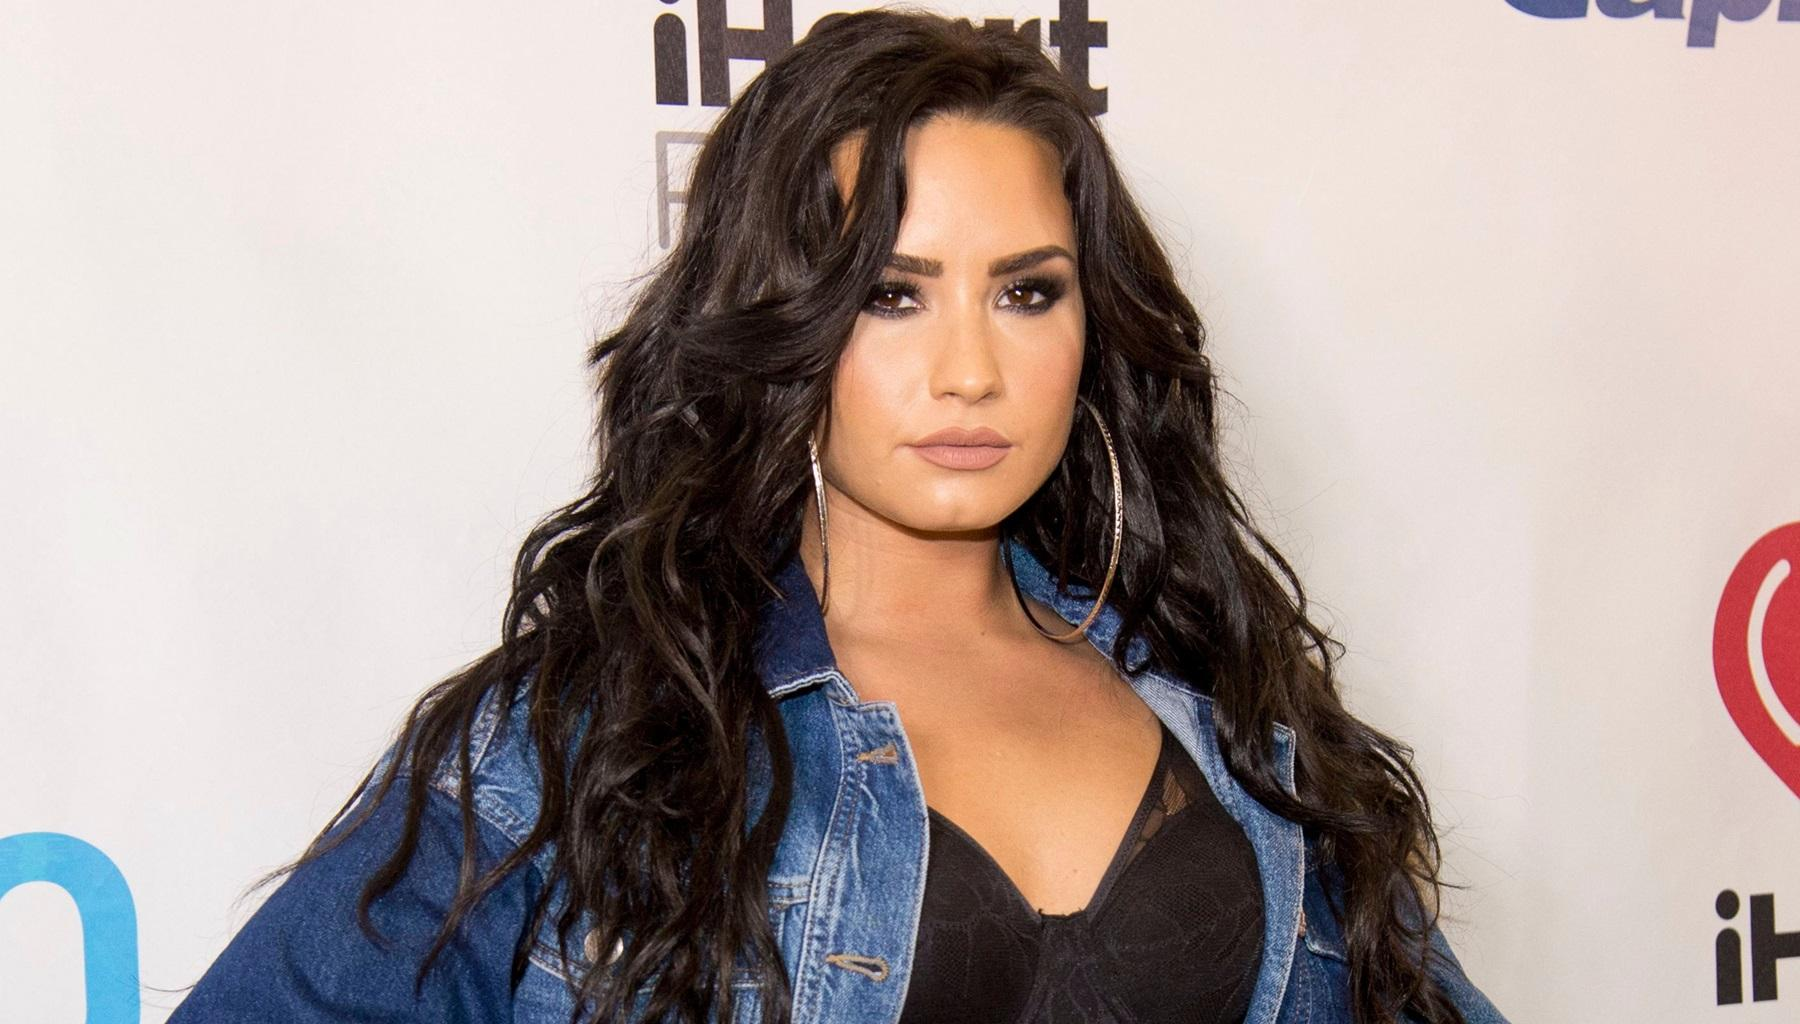 Demi Lovato Shares Powerful Photos From Her Trip To Israel Where She 'Had A Connection To God'